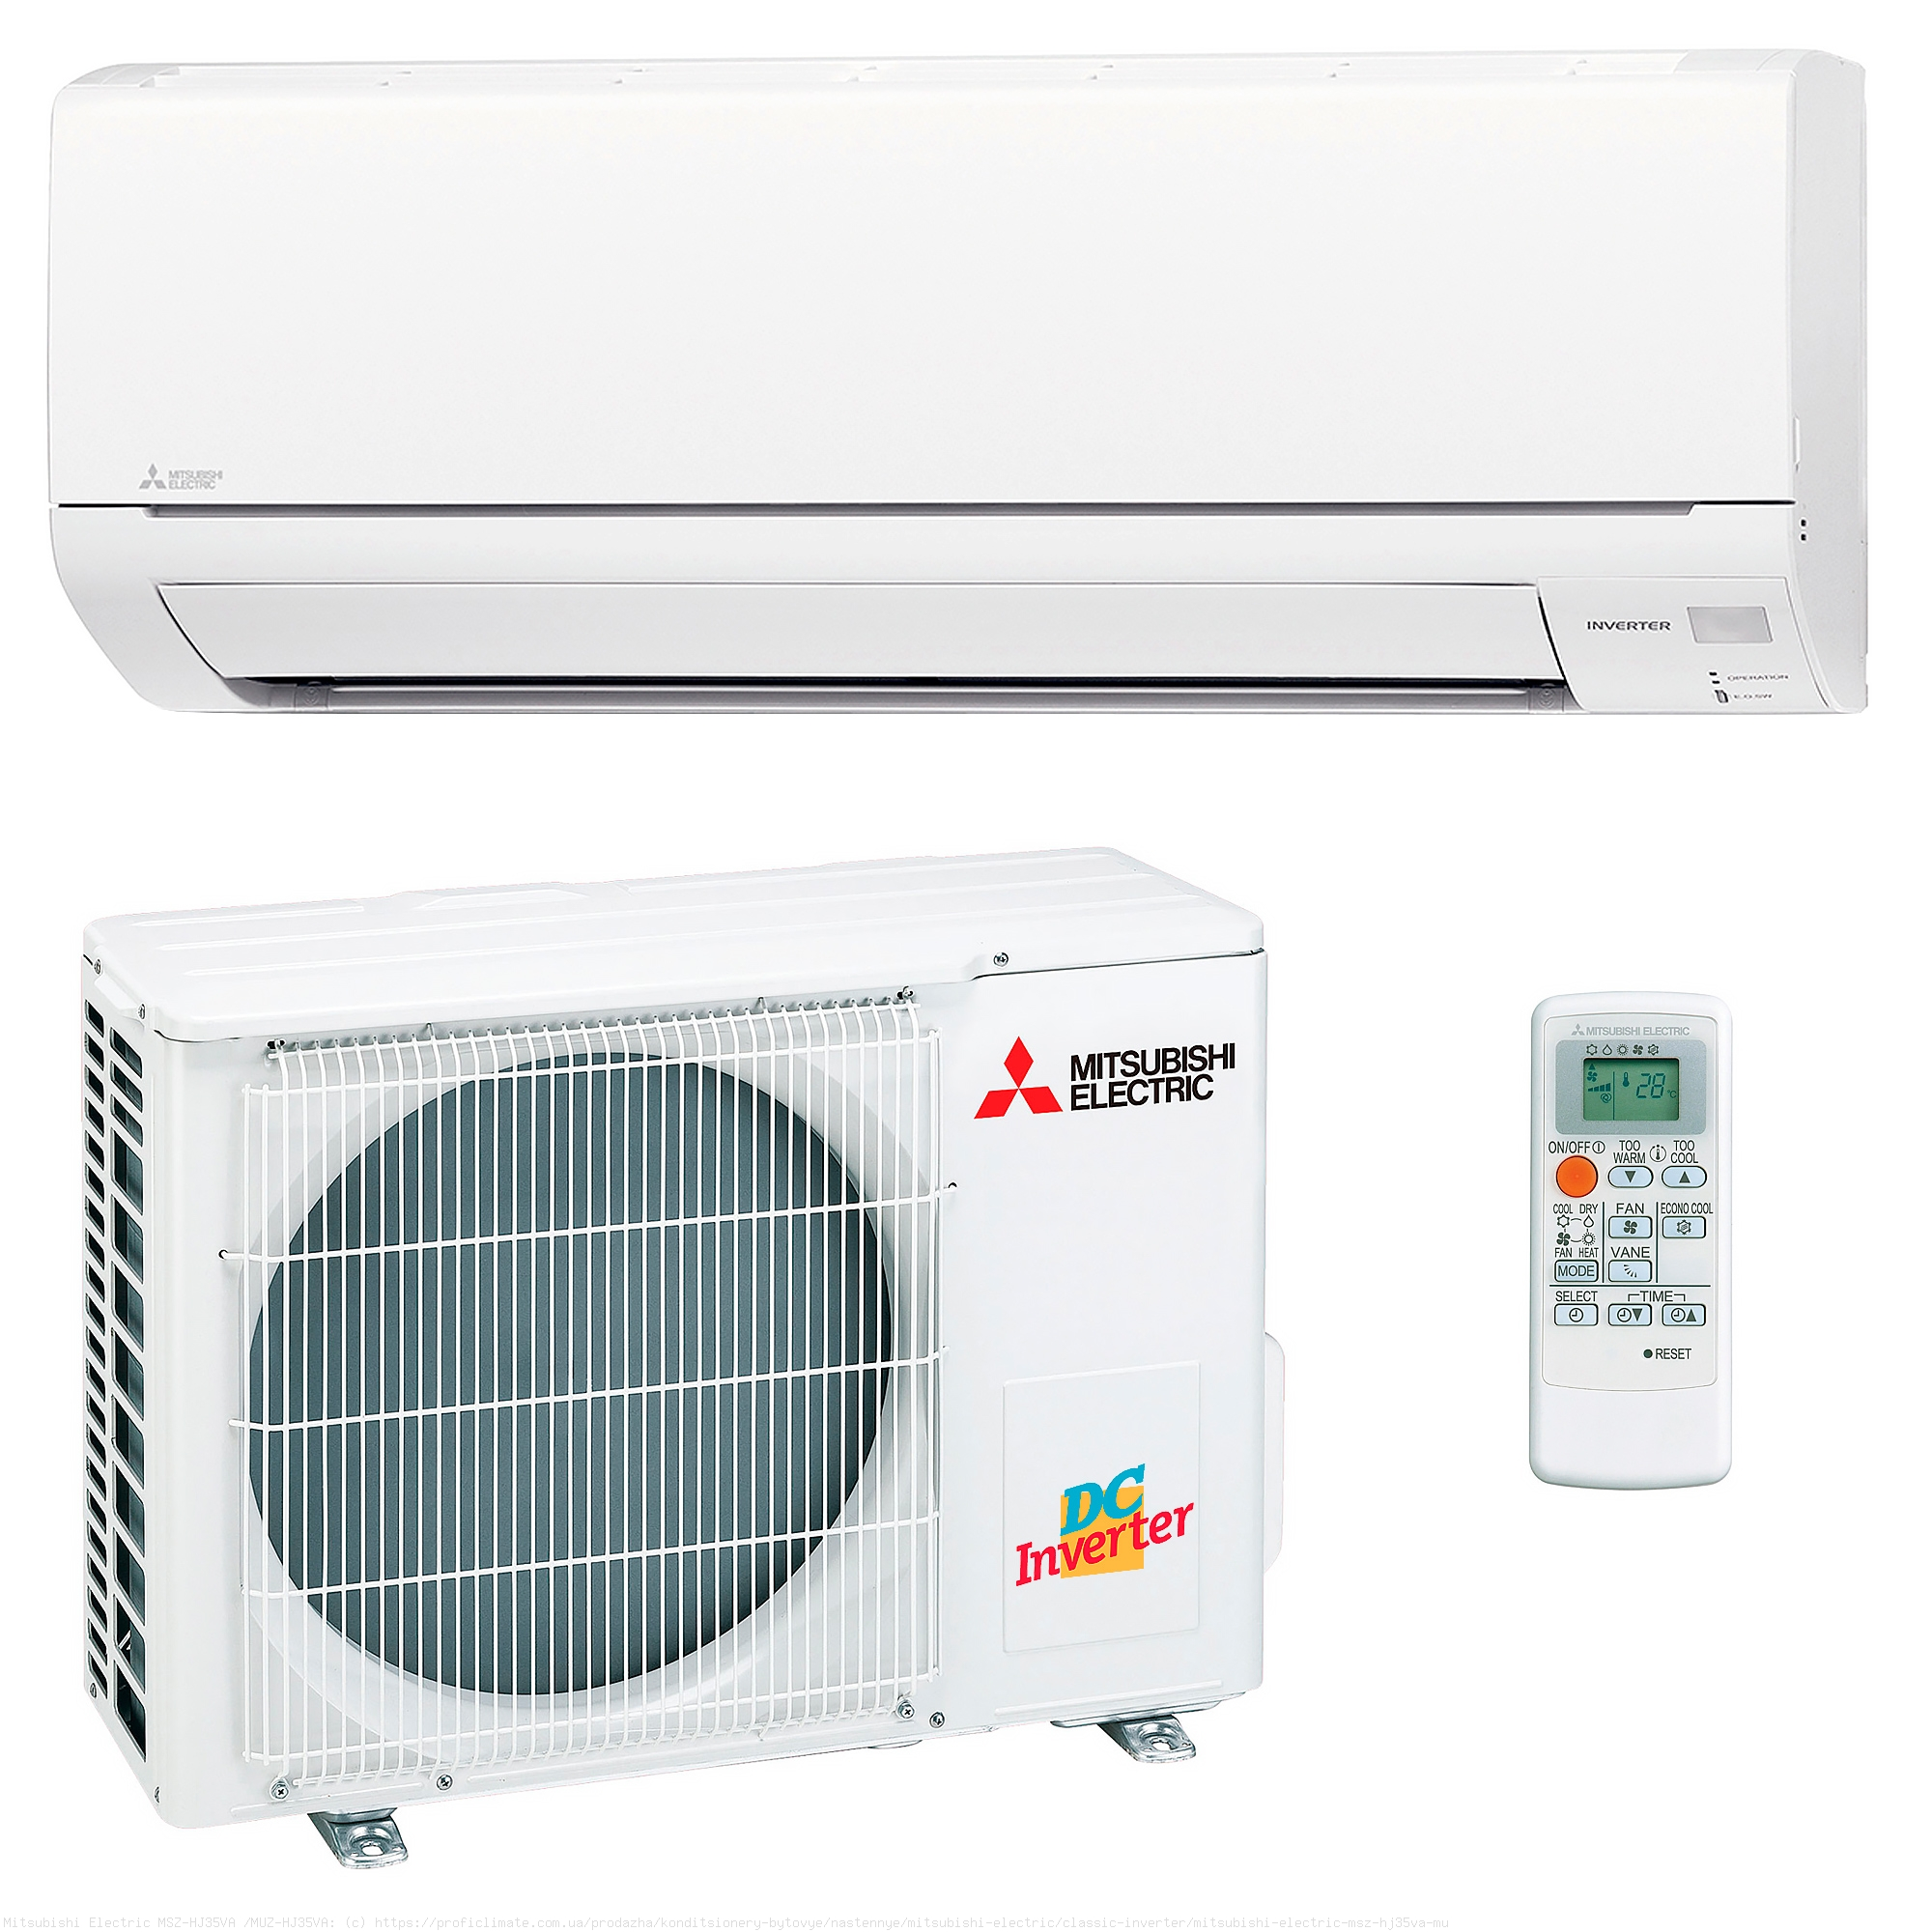 кондиционеры mitsubishi electric msz-hj35